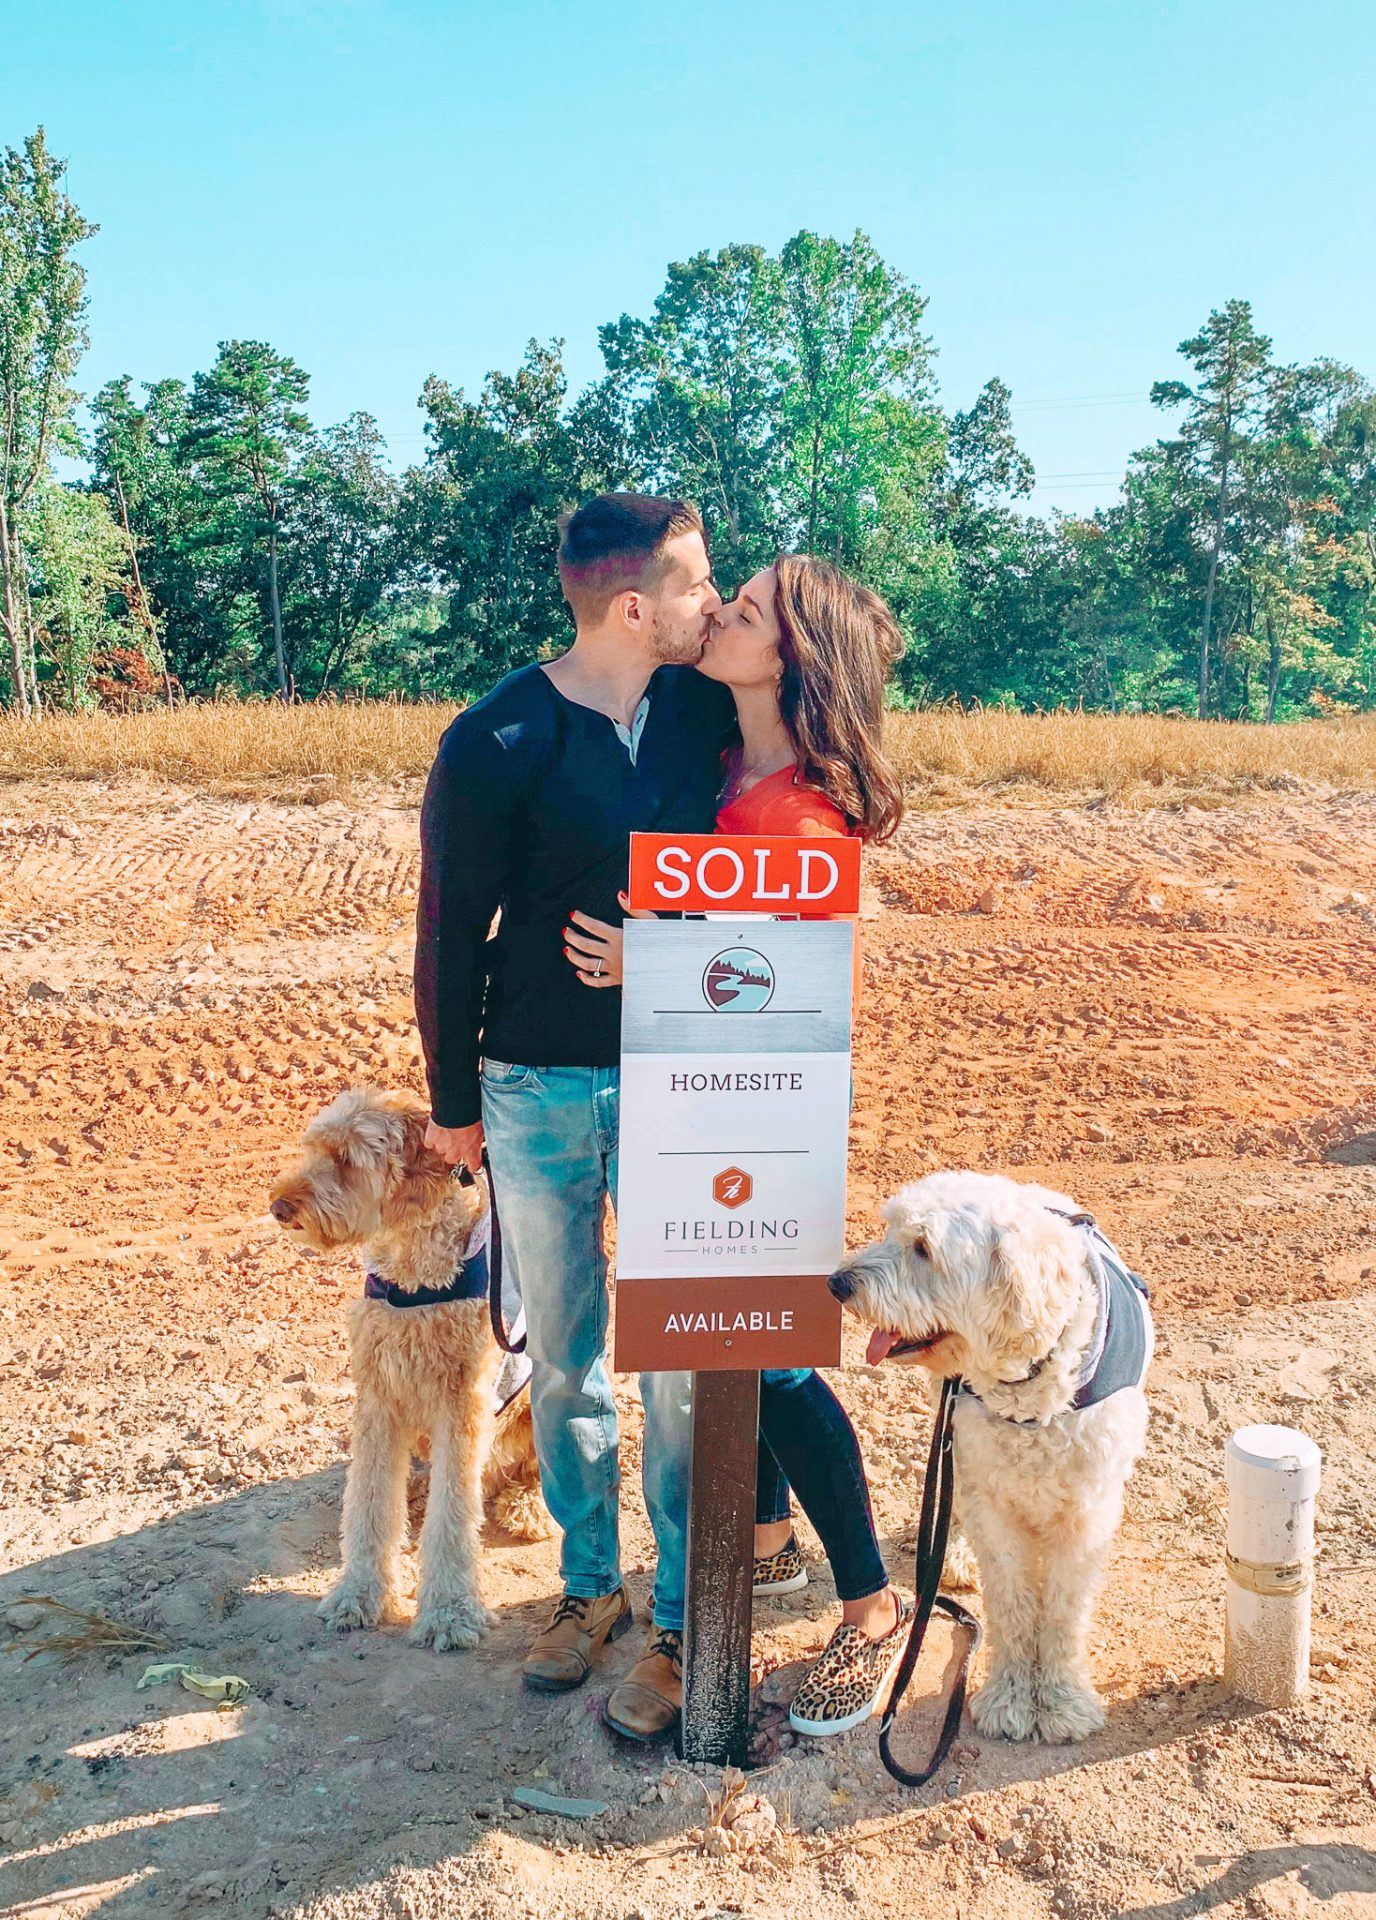 Engagement, moving home, building, fort mill, sc, masons bend, moving, building, home design, north Carolina, fielding homes, moving blog